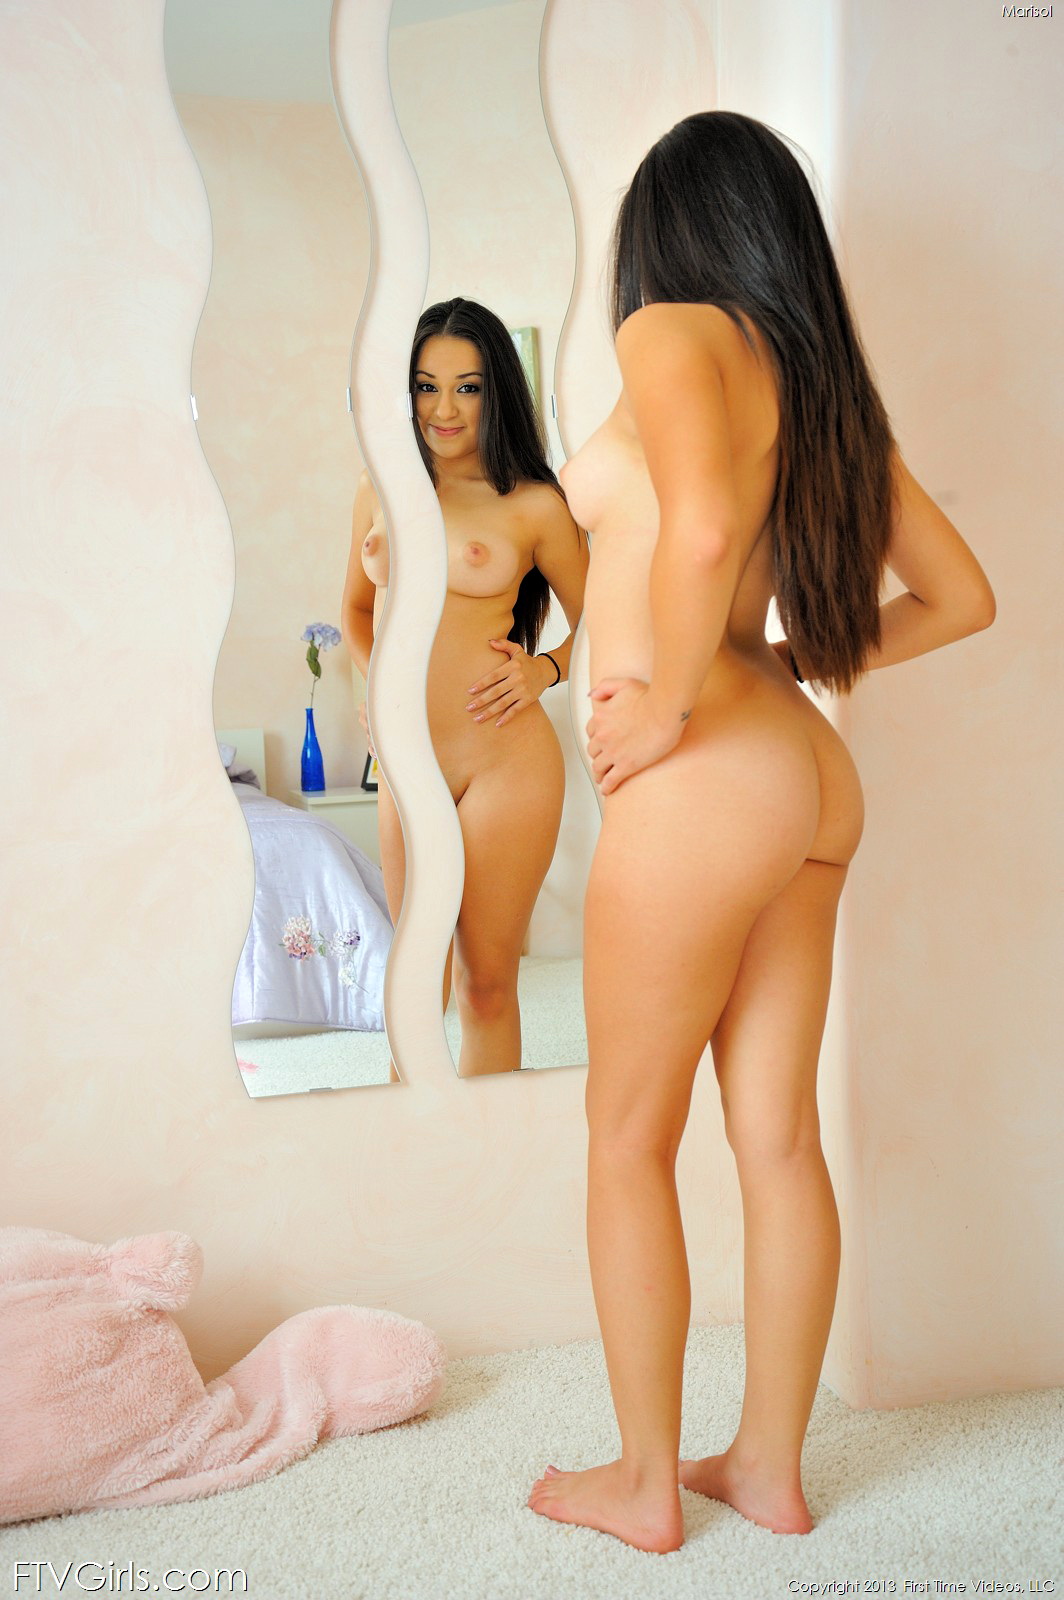 Ftv girls marisol and the